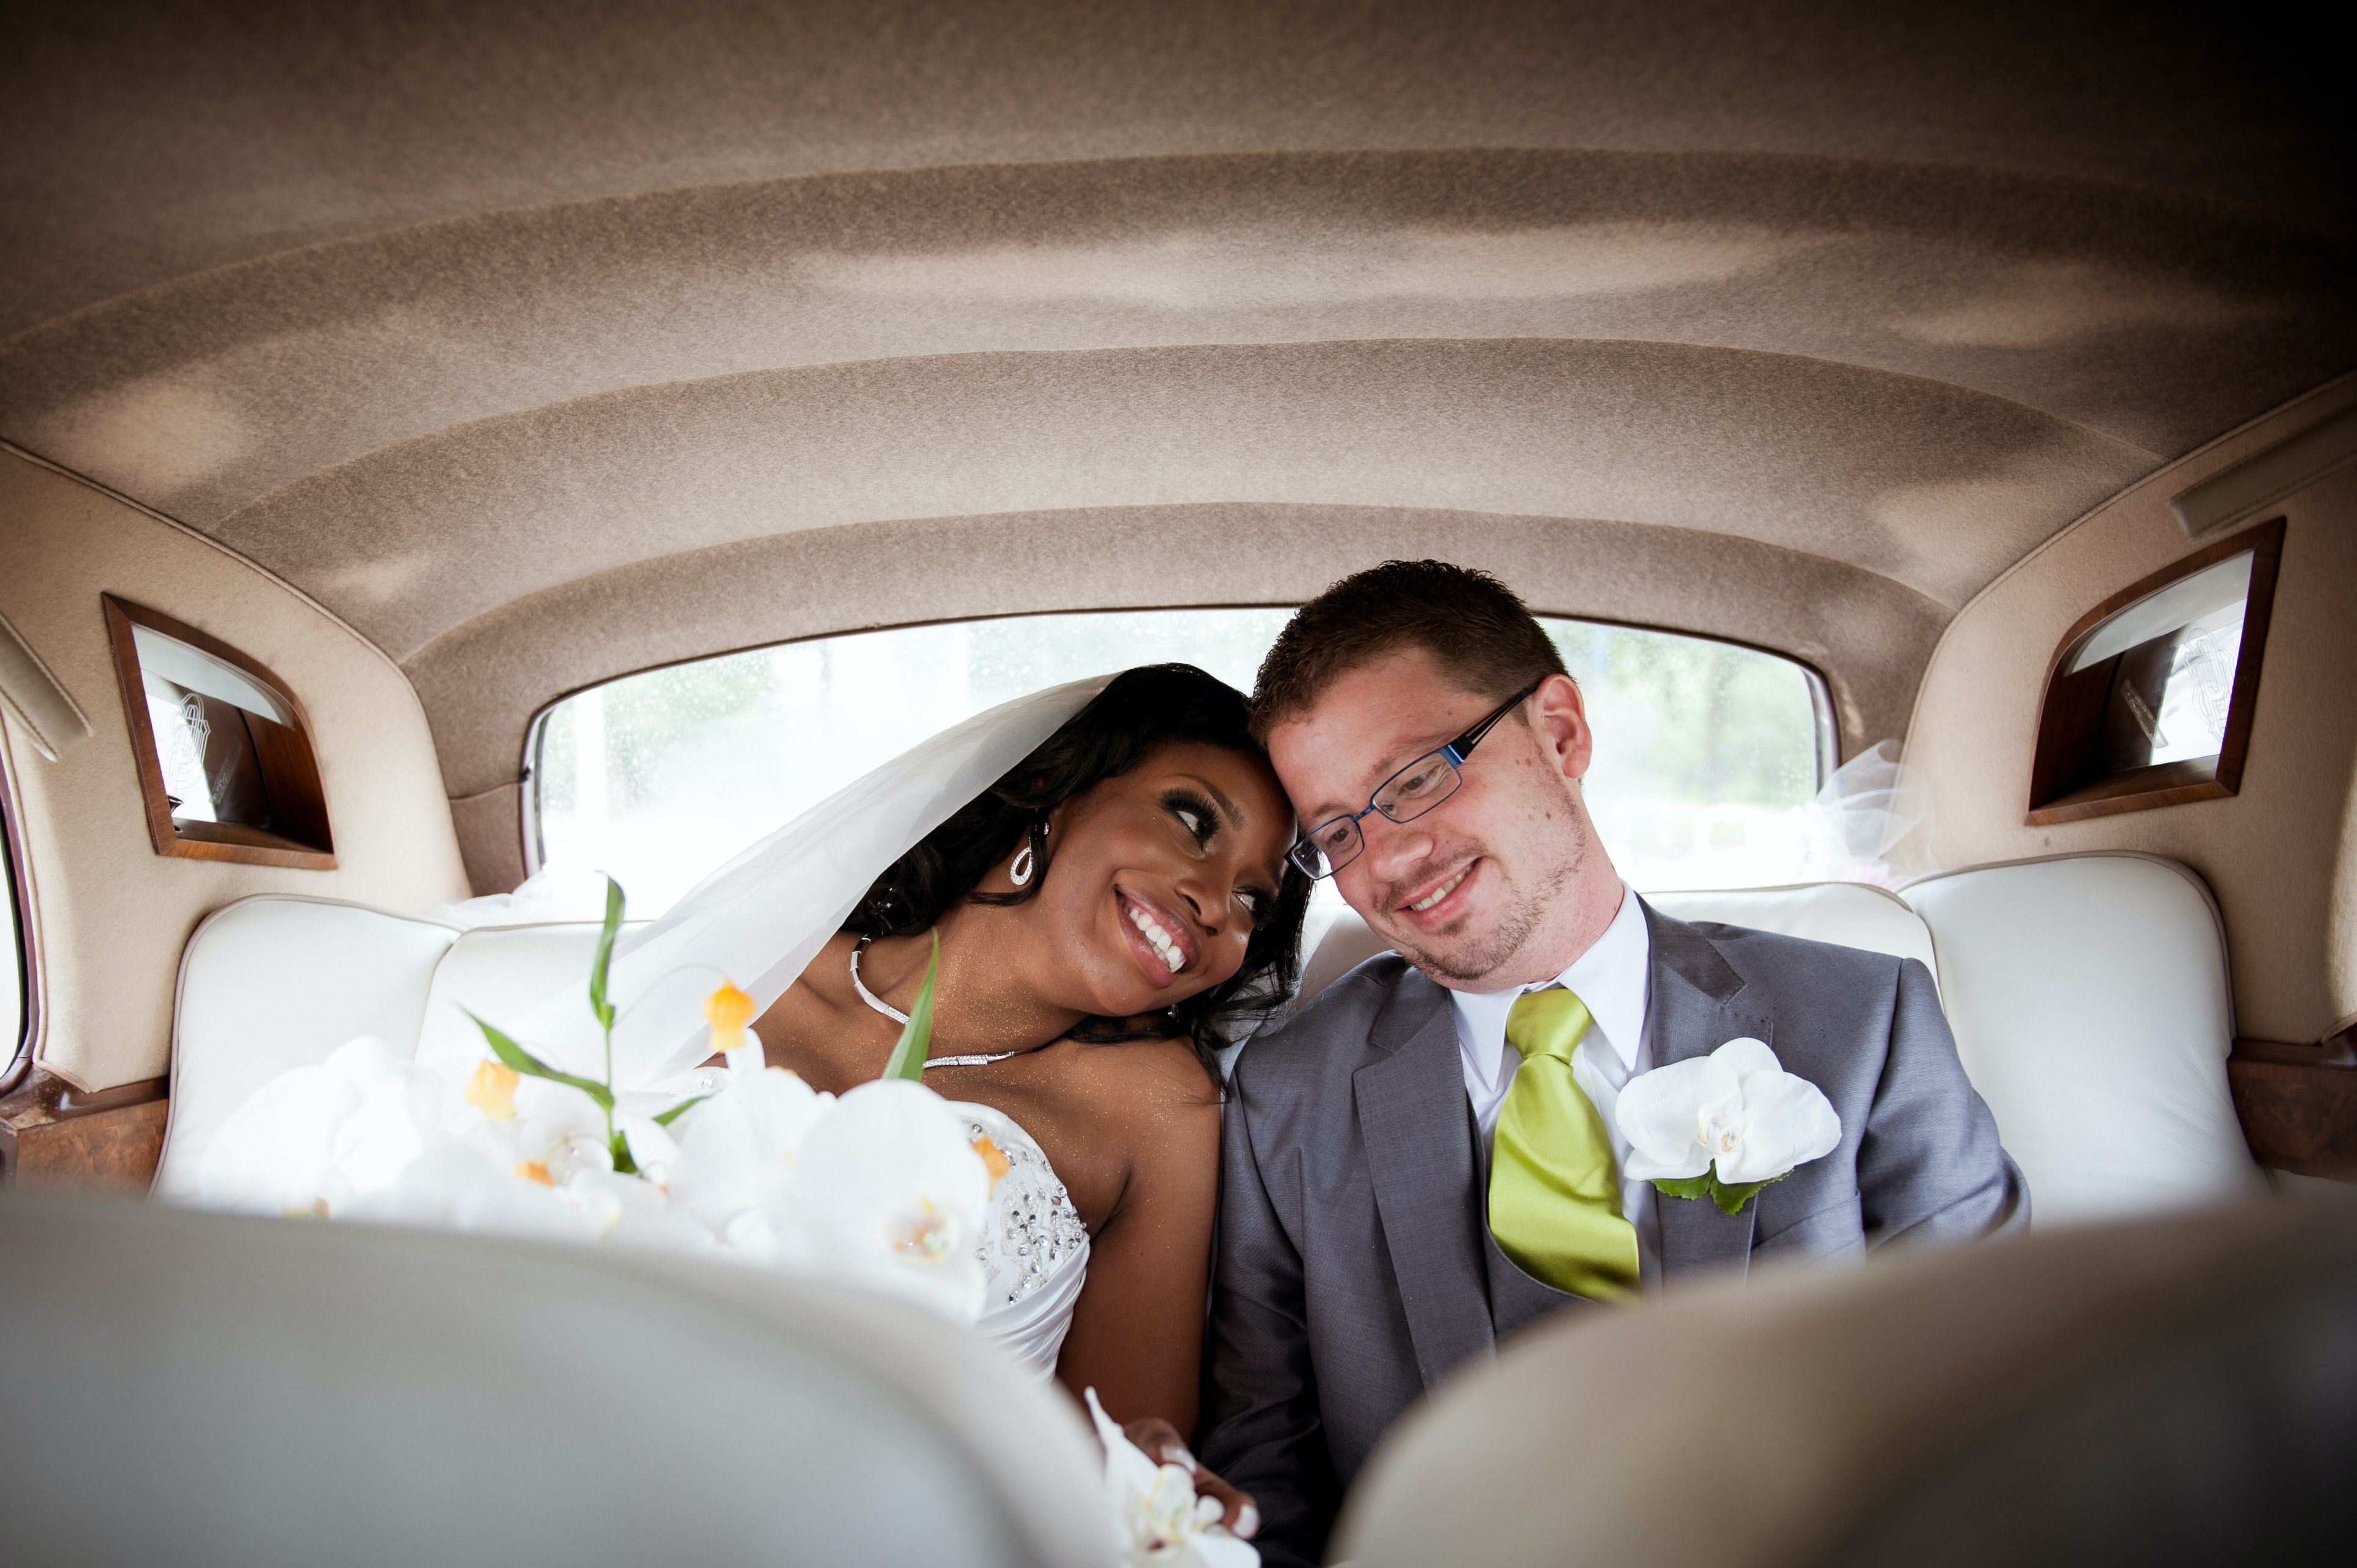 photo of smiling wedding coupe sitting inside vehicle